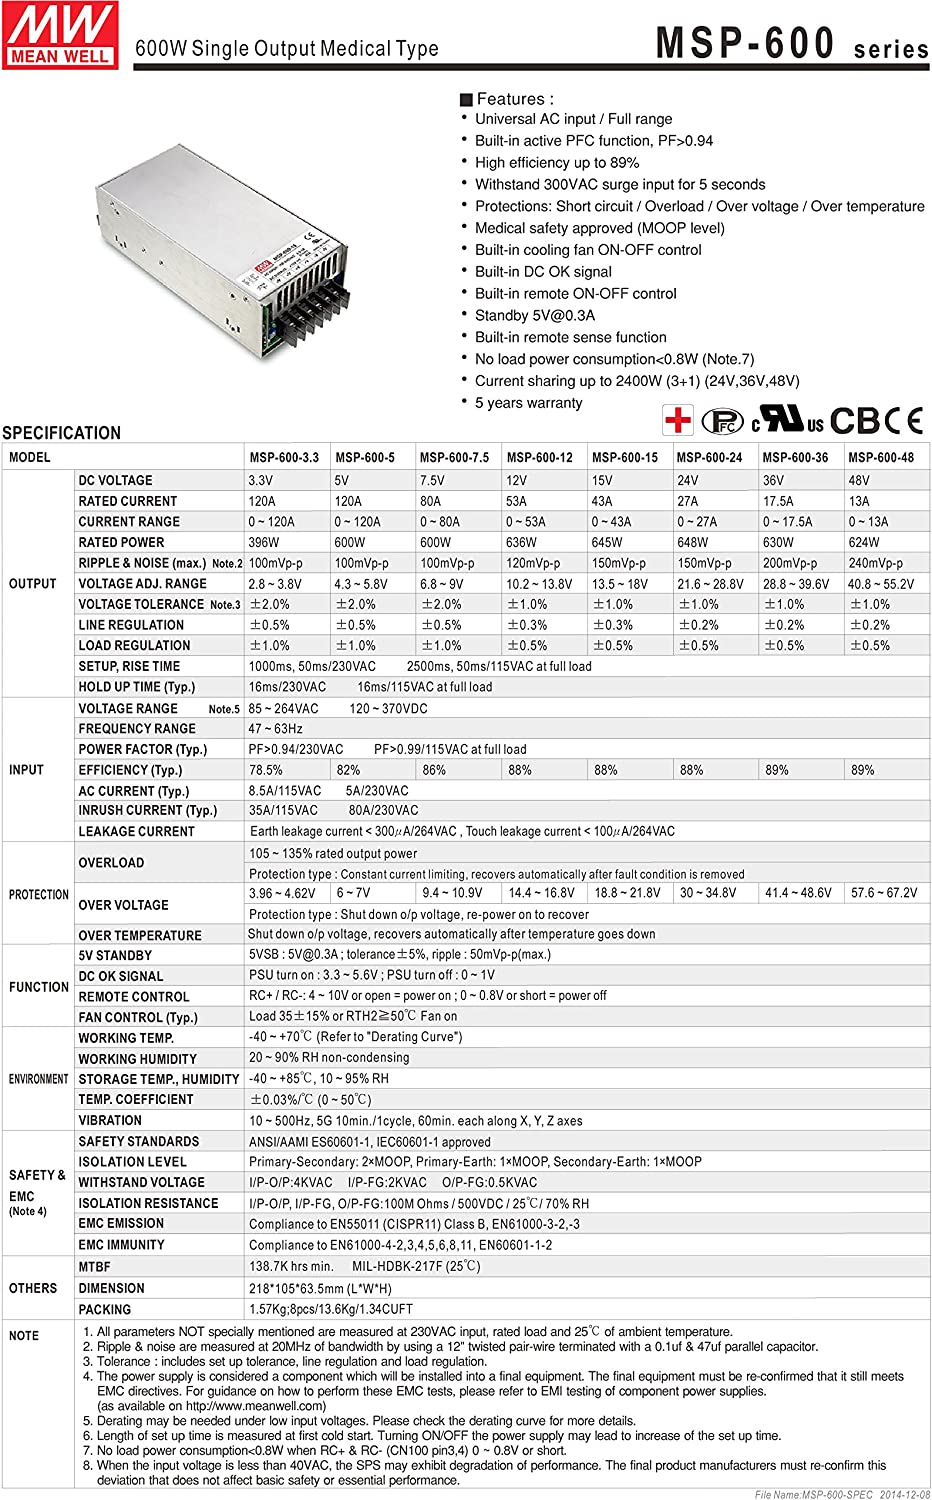 MW Mean Well MSP-600-36 36V 17.5A Enclosed-PFC Medical Power Supplies